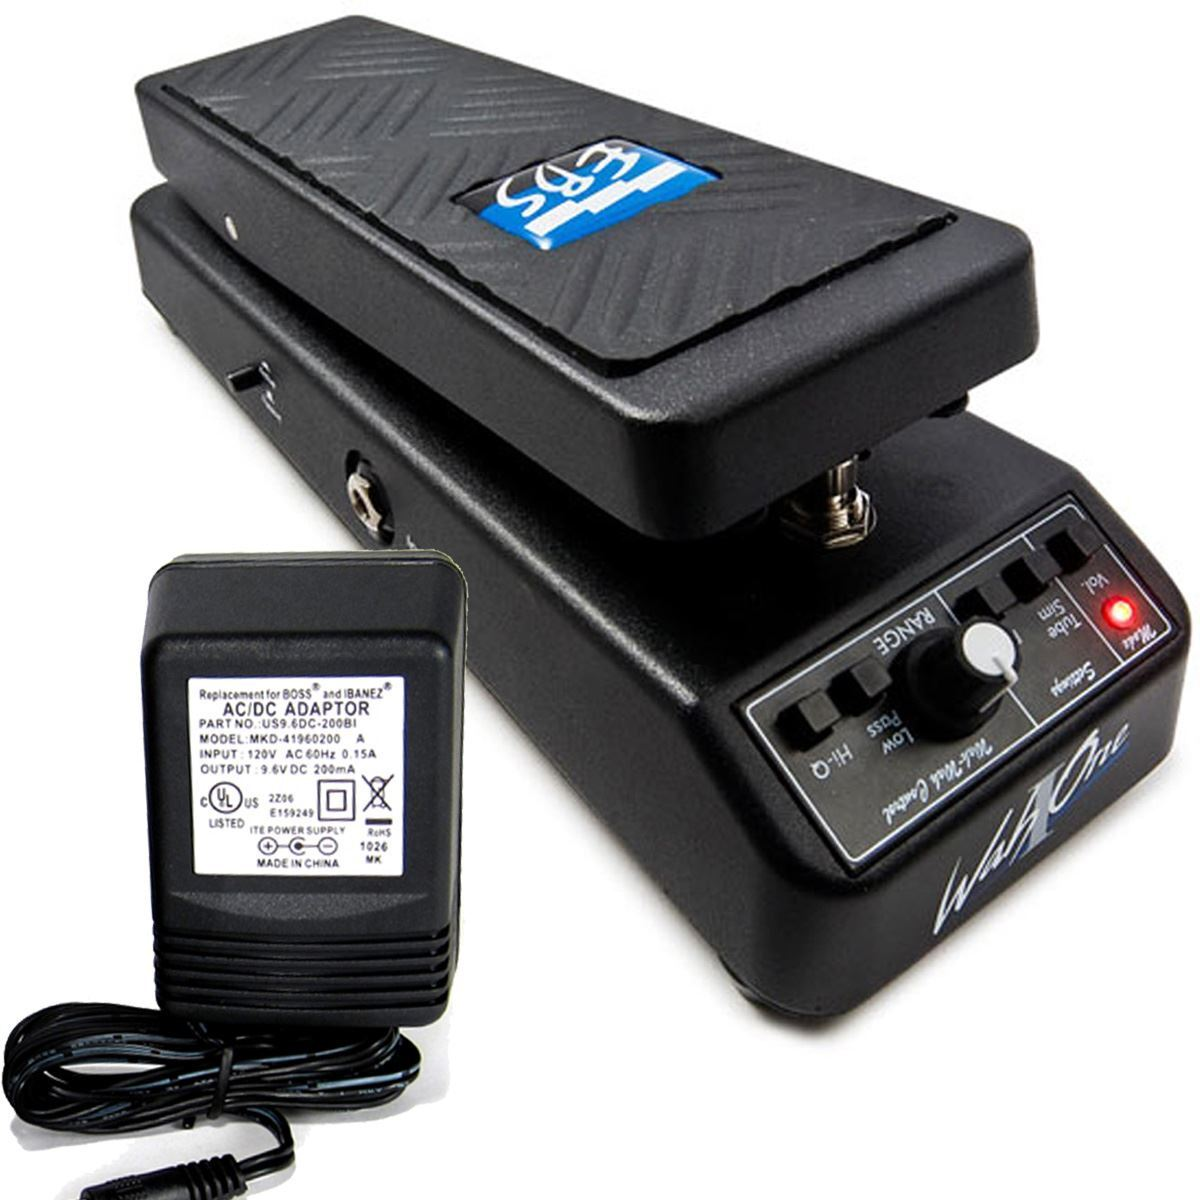 EBS WahOne Professional Bass Wah-Wah/Volume Pedal w/ 9v power supply 0 shipping